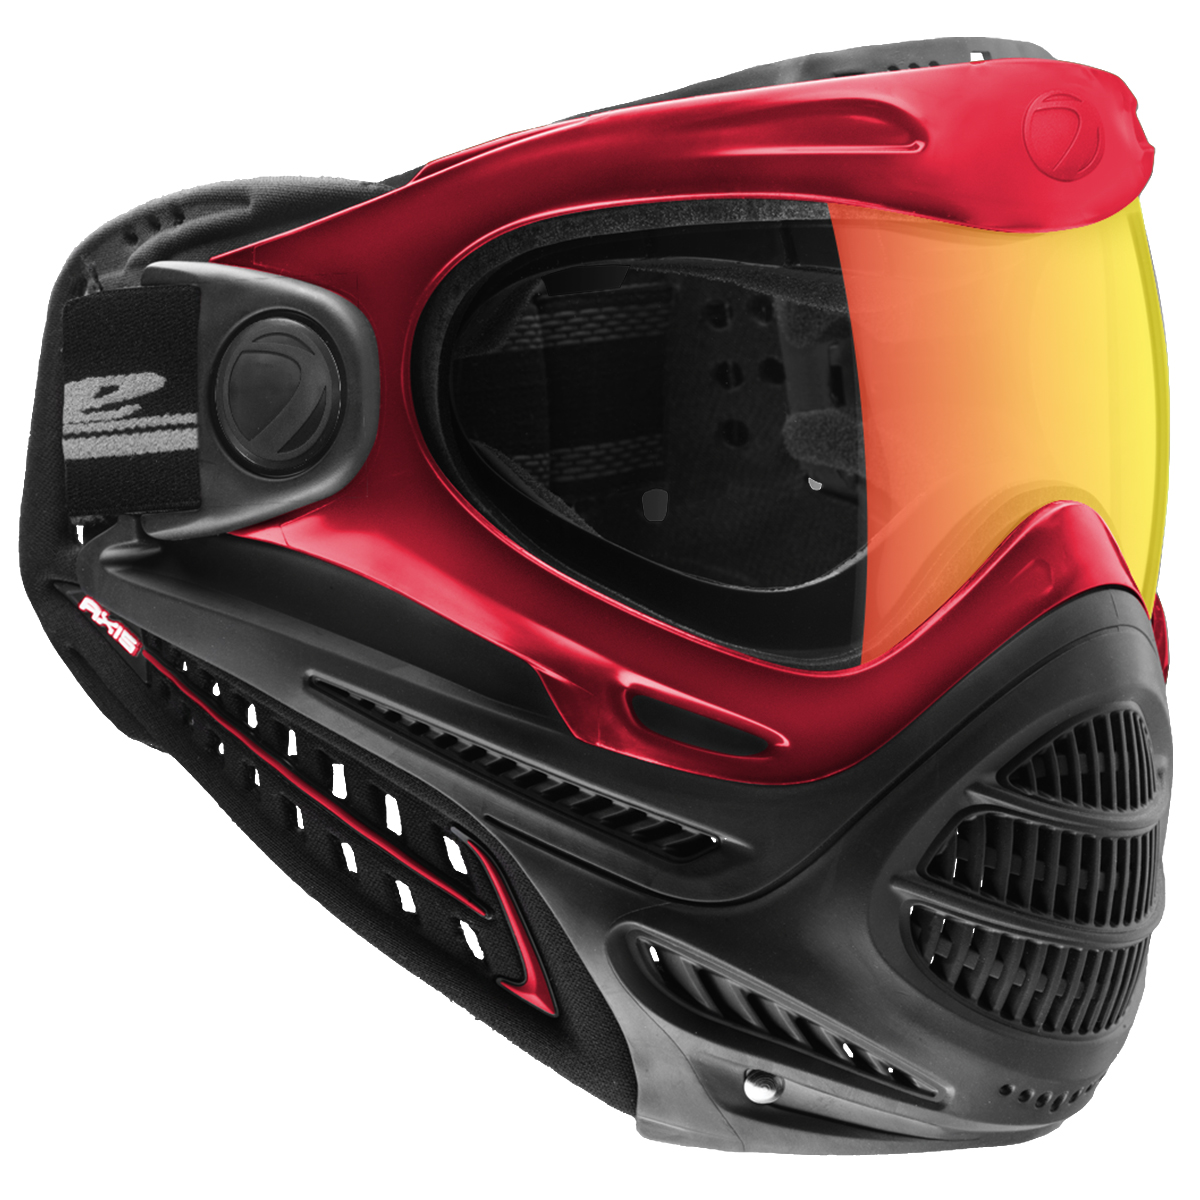 Dye Axis Pro Goggles w/ Thermal Lens - Red Bronze Fire